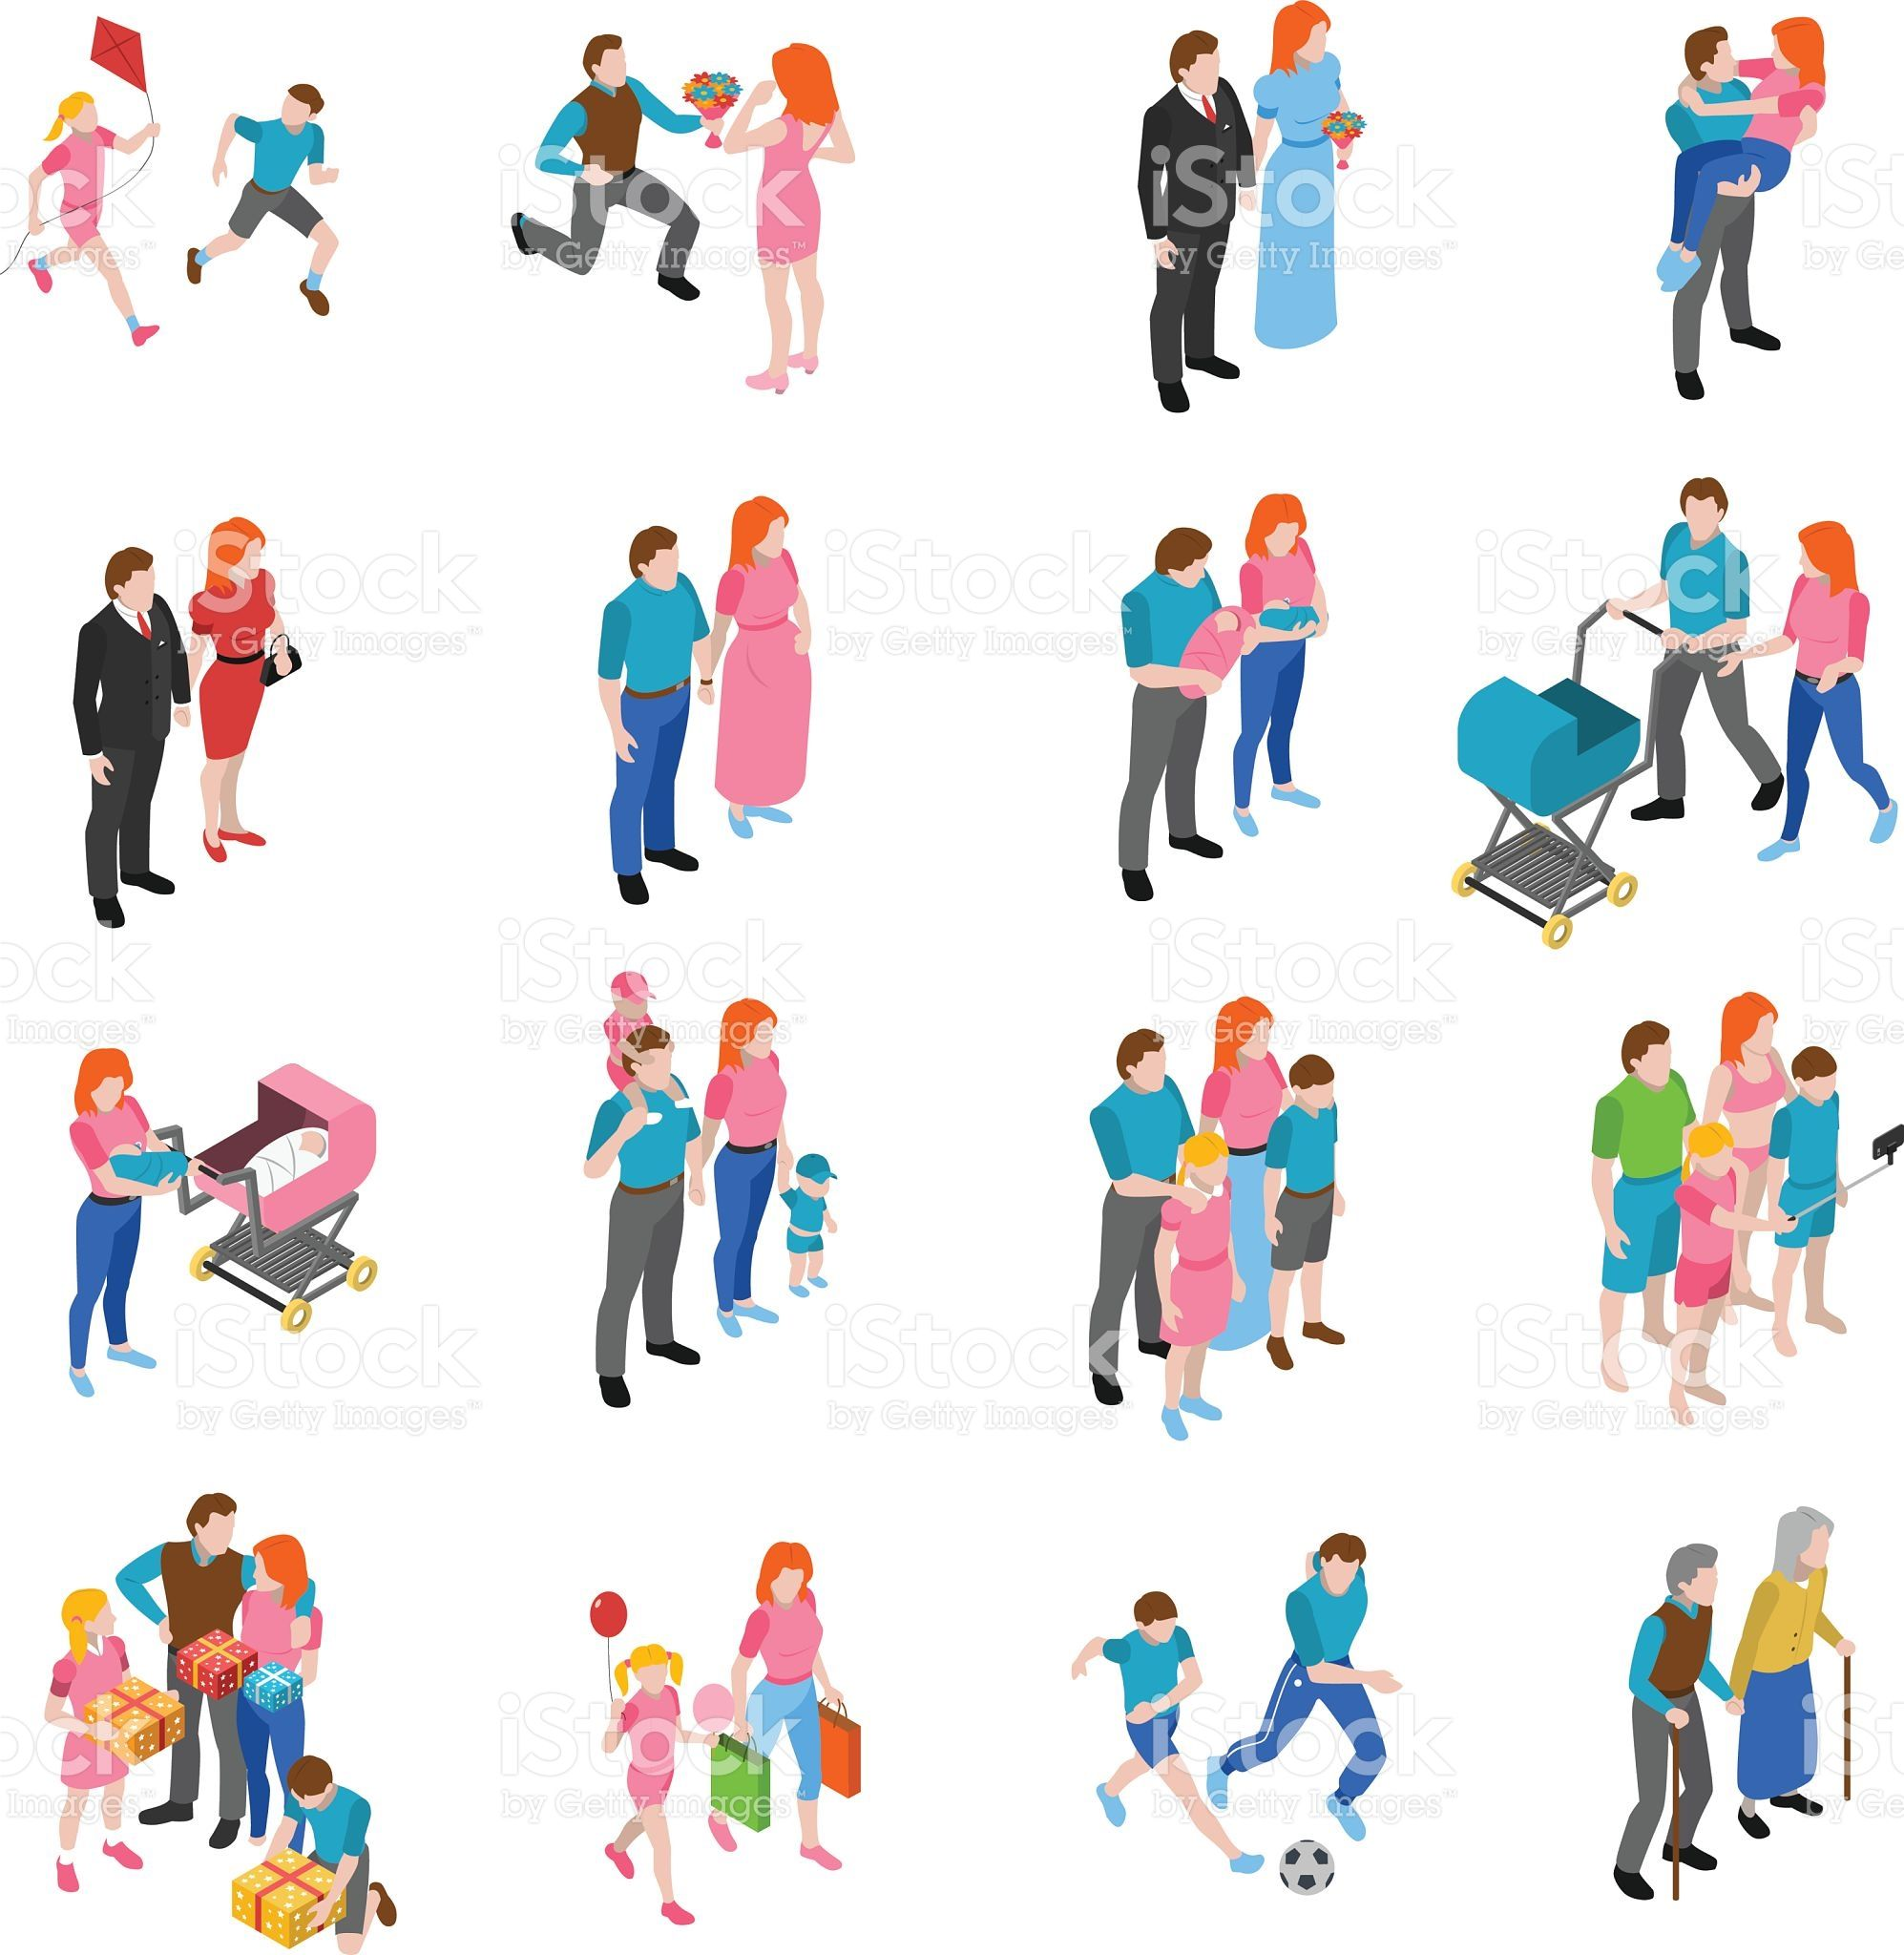 Family Relations Isometric Icons Set With Engagement Marriage Parents アイコンセット ベクターイラスト アイコン